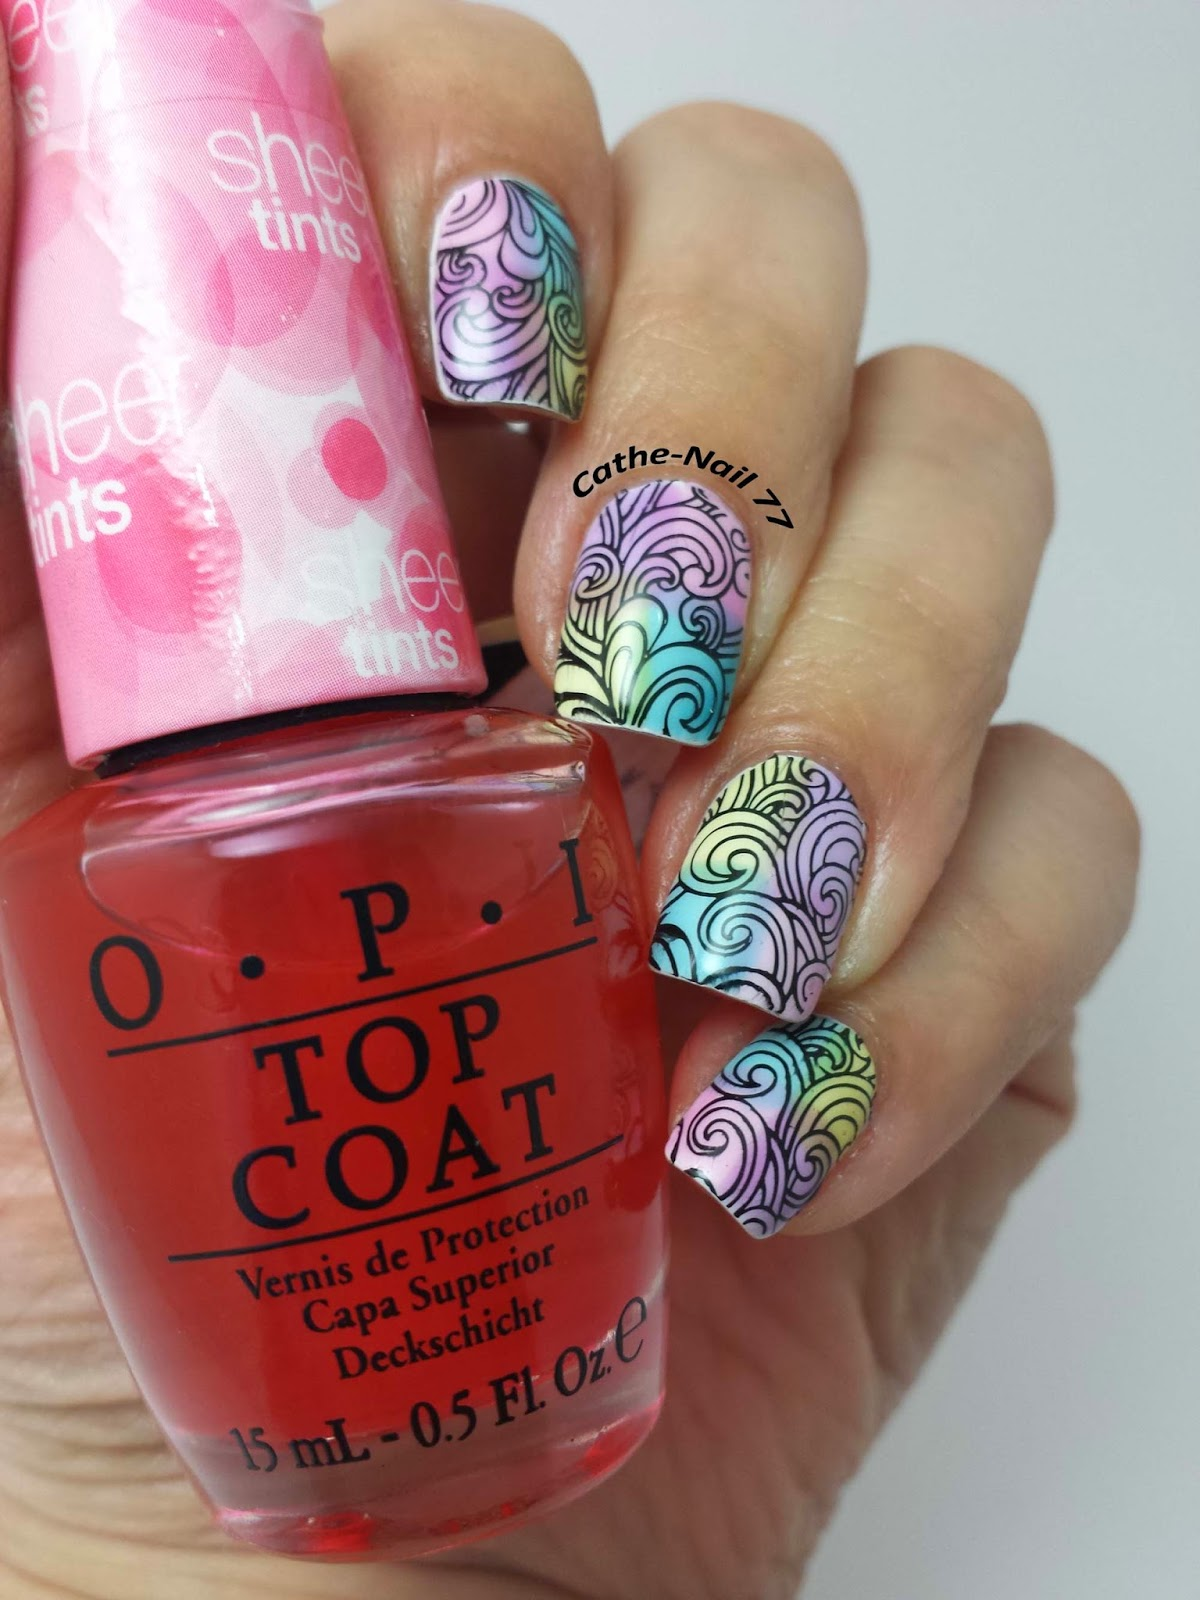 http://cathenail.blogspot.fr/2014/06/opi-sheer-tints-premier-essai-news.html